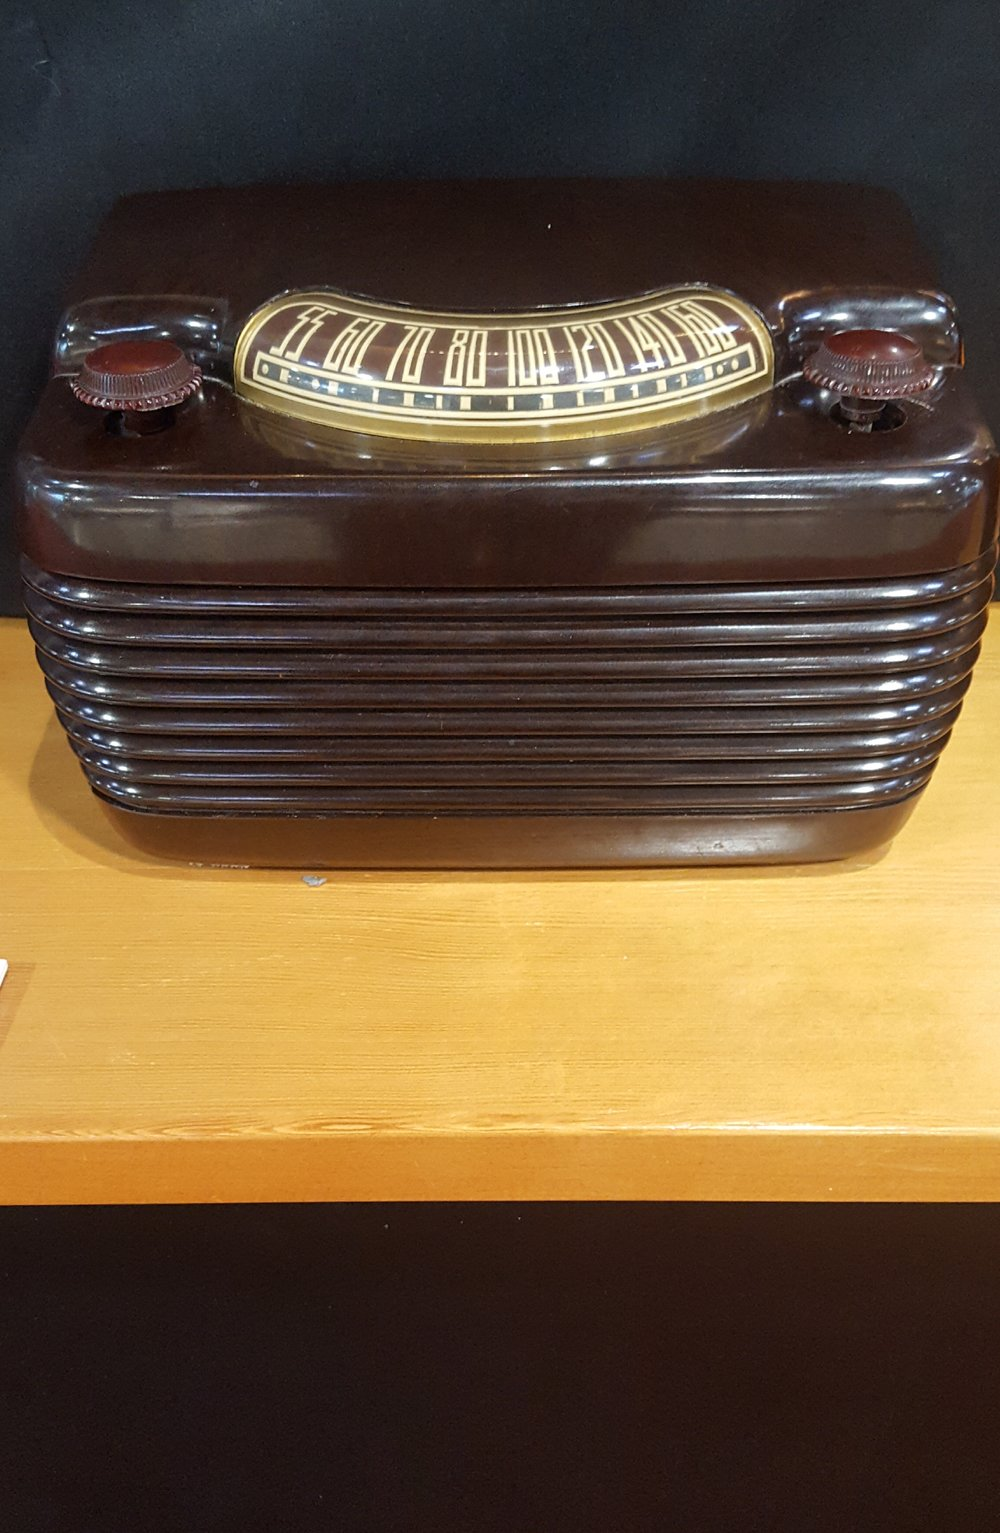 The rounded edges and horizontal lines of this 1940s radio are characteristic of the Streamline Moderne style.